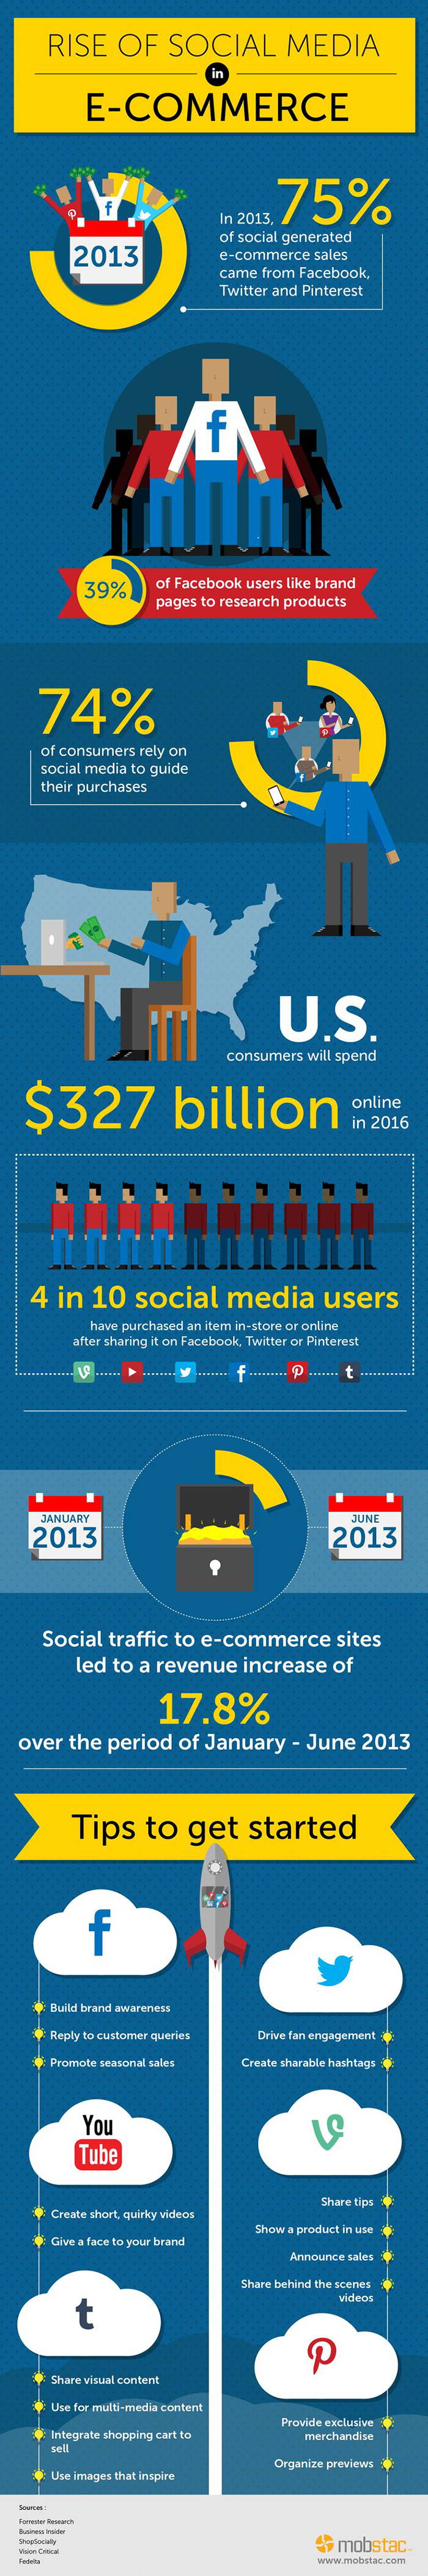 Social Media & Ecommerce Infographic